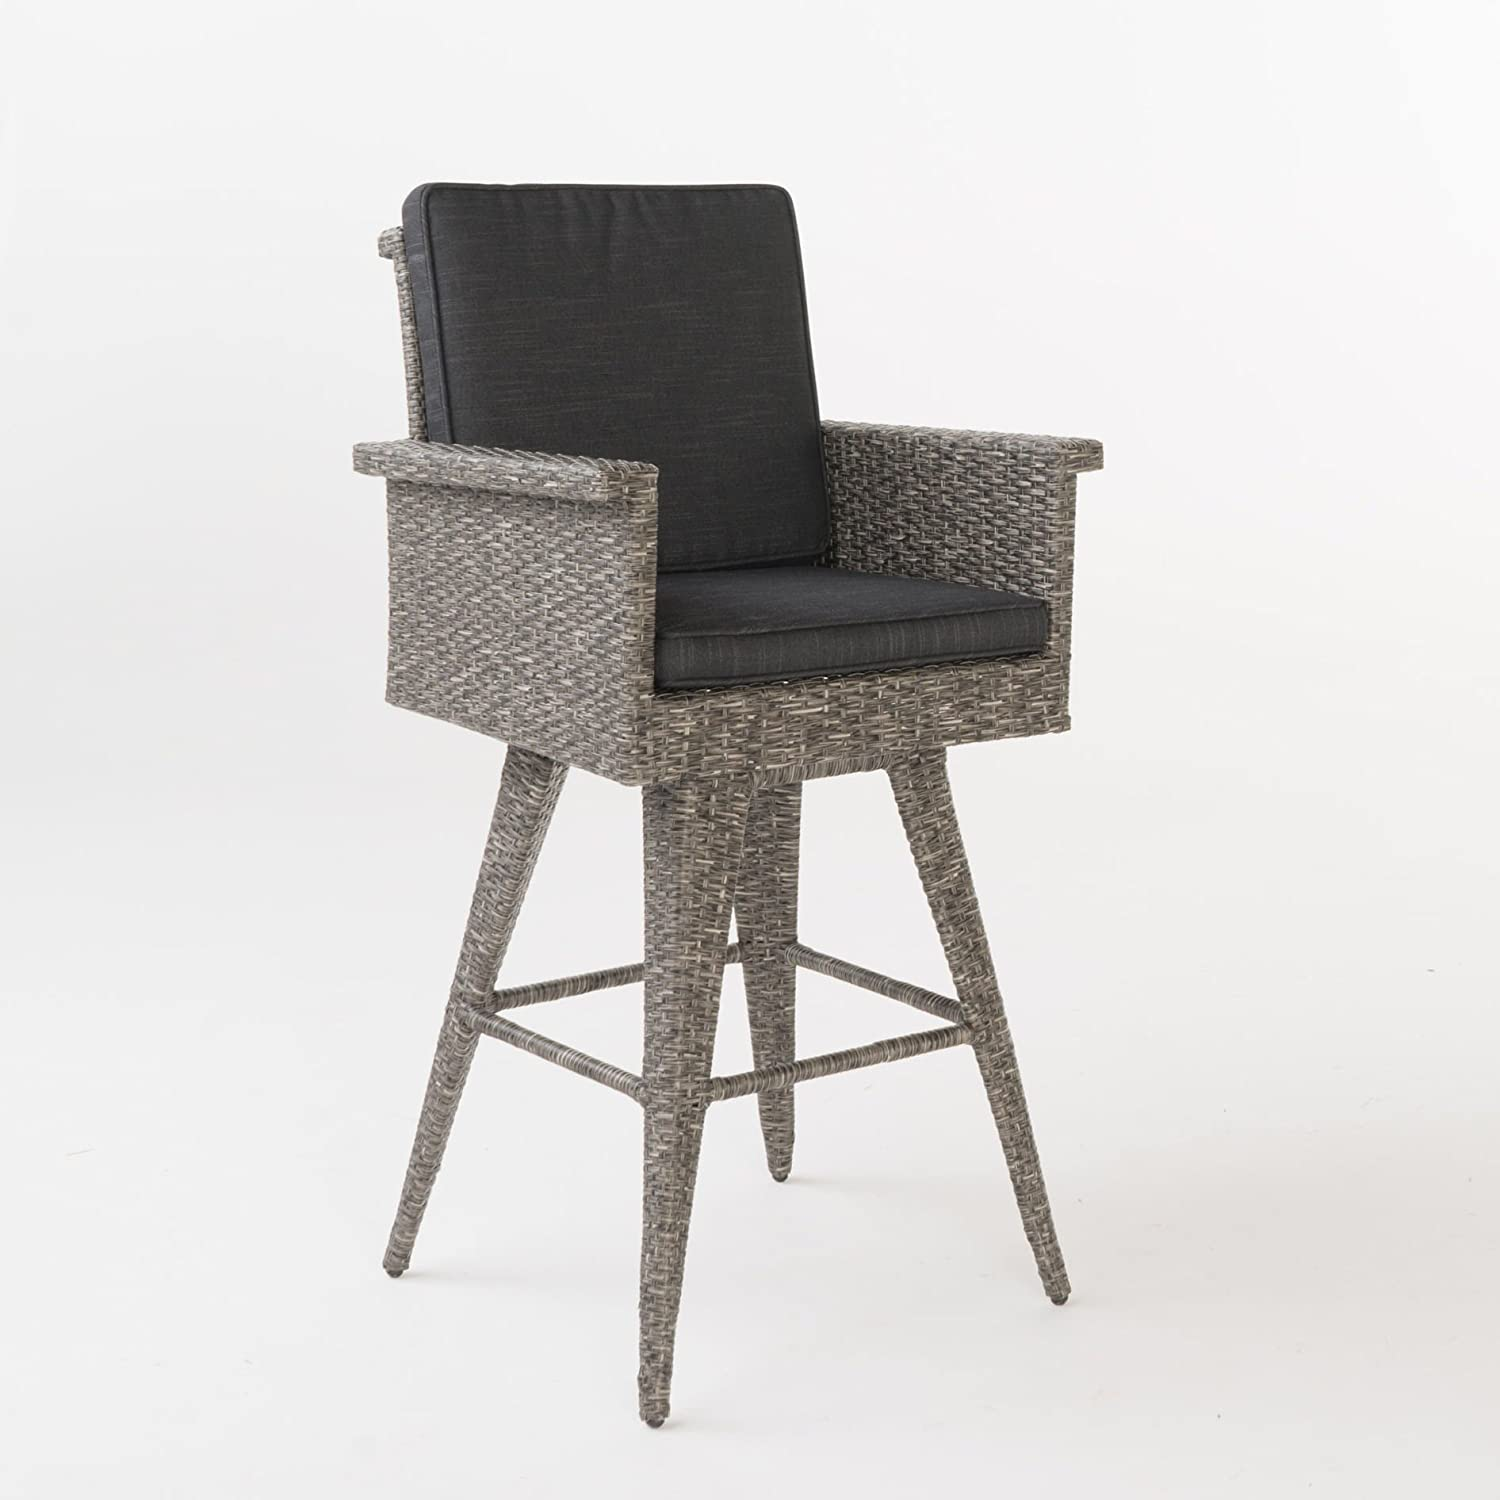 Amazon.com: Puerta Outdoor Wicker Barstool with Cushions by ...